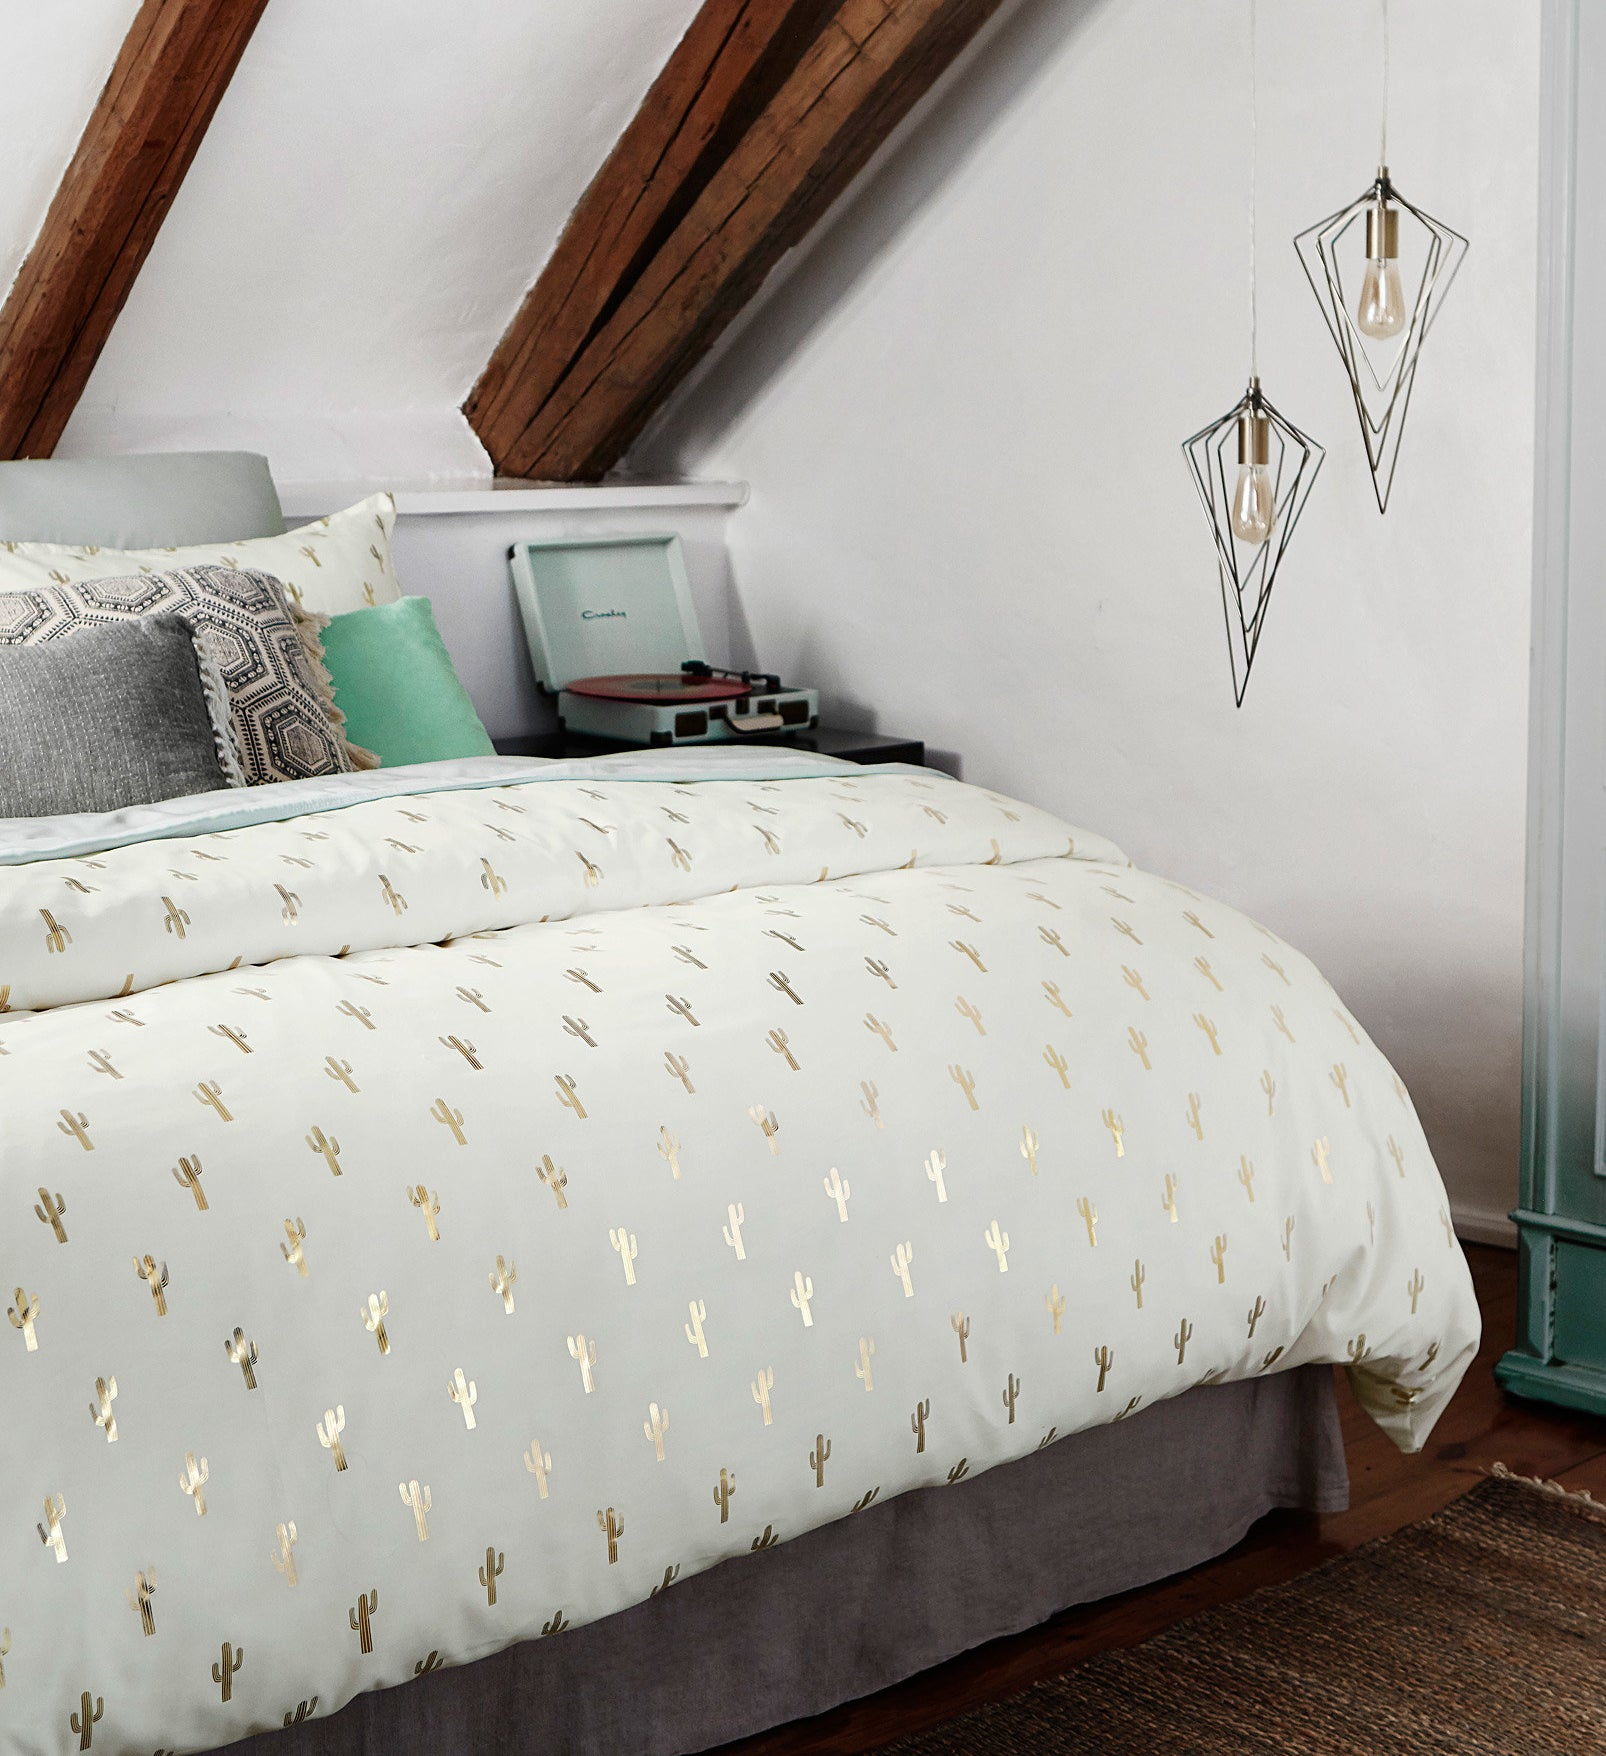 A thick duvet on a large bed with pillows